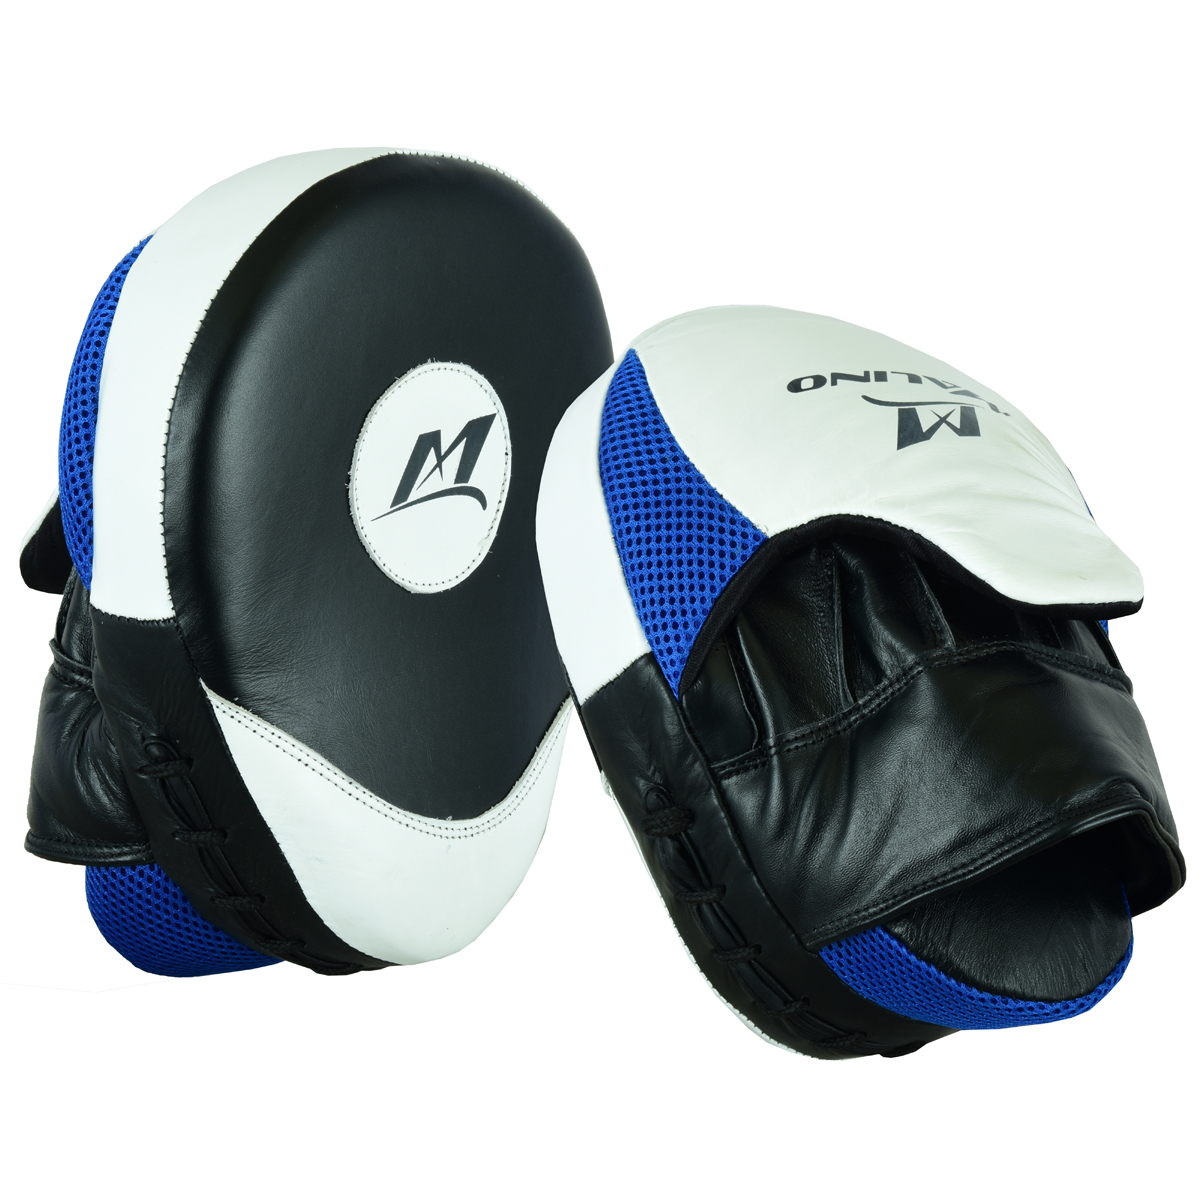 Malino Focus Pads Black-White-Blue